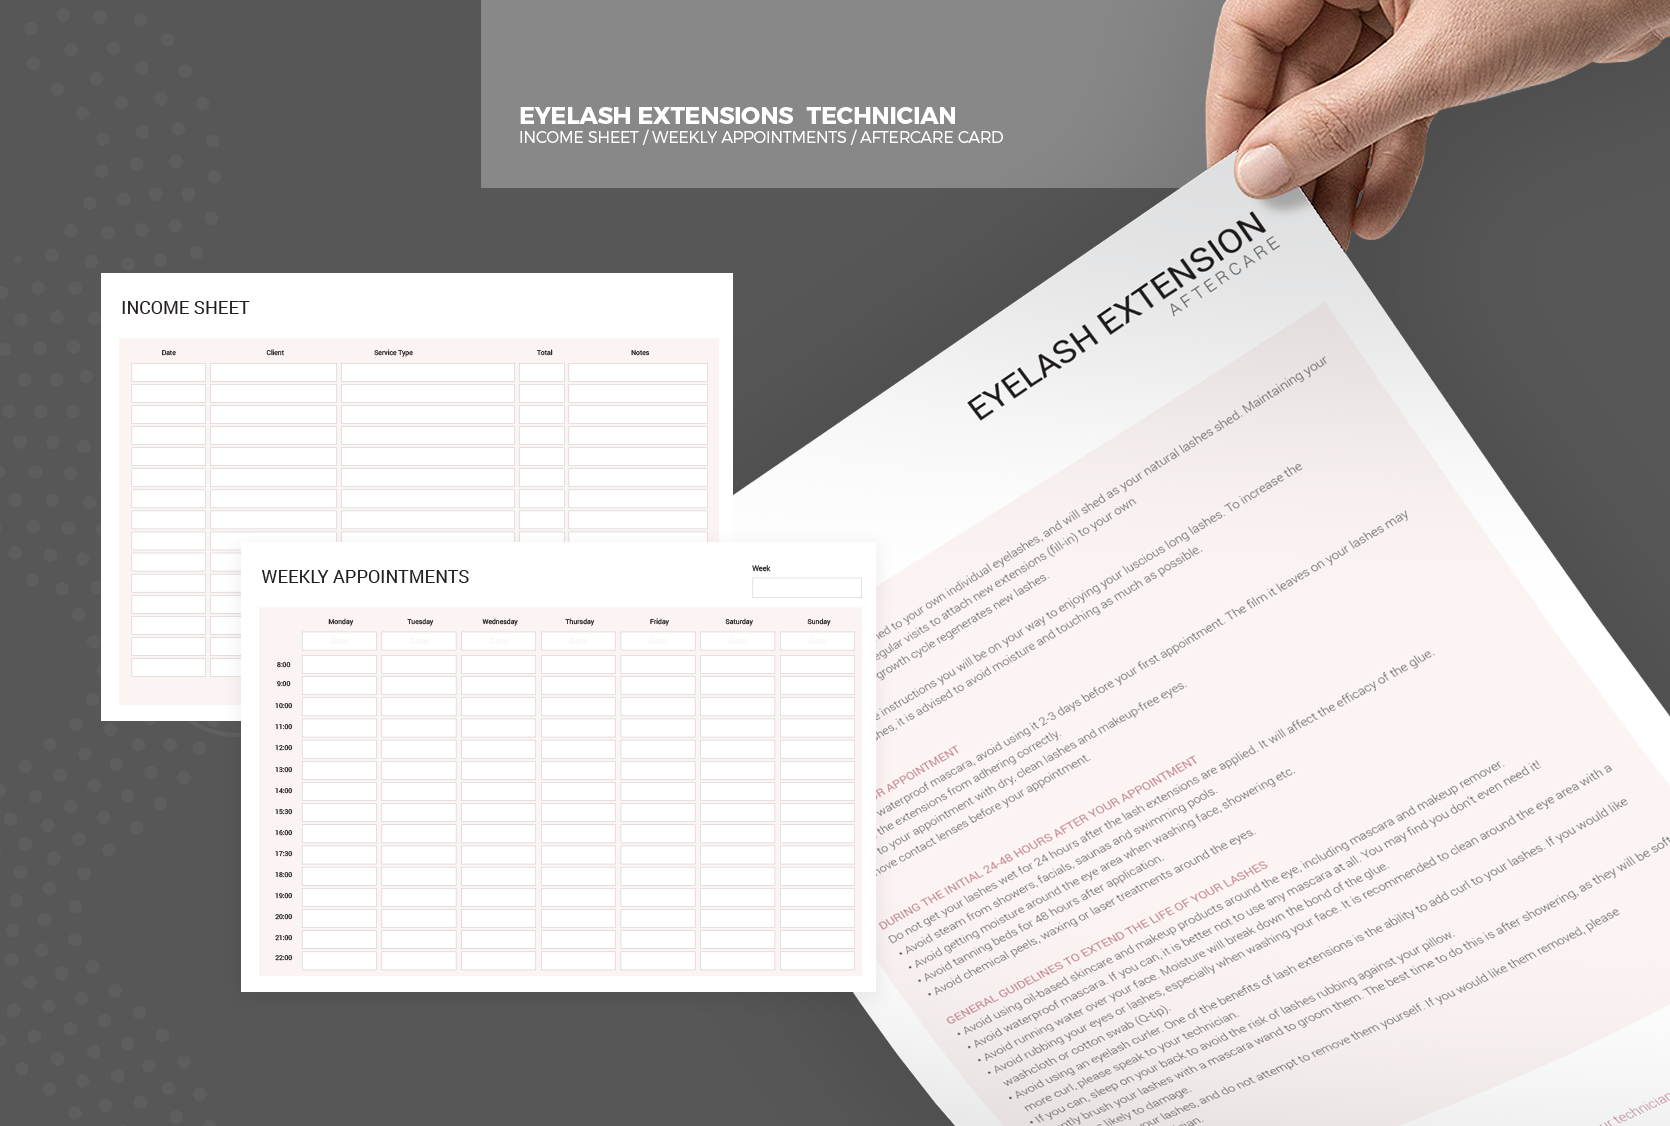 Can You Get Eyelash Extensions Wet In The Shower Eyelash Extension Consultation Forms Client Intake Forms Lash Mapping Consent Release Aftercare Card Lash Guide Instant Download Pdf Eyelash Extensions Referral Cards Eyelashes